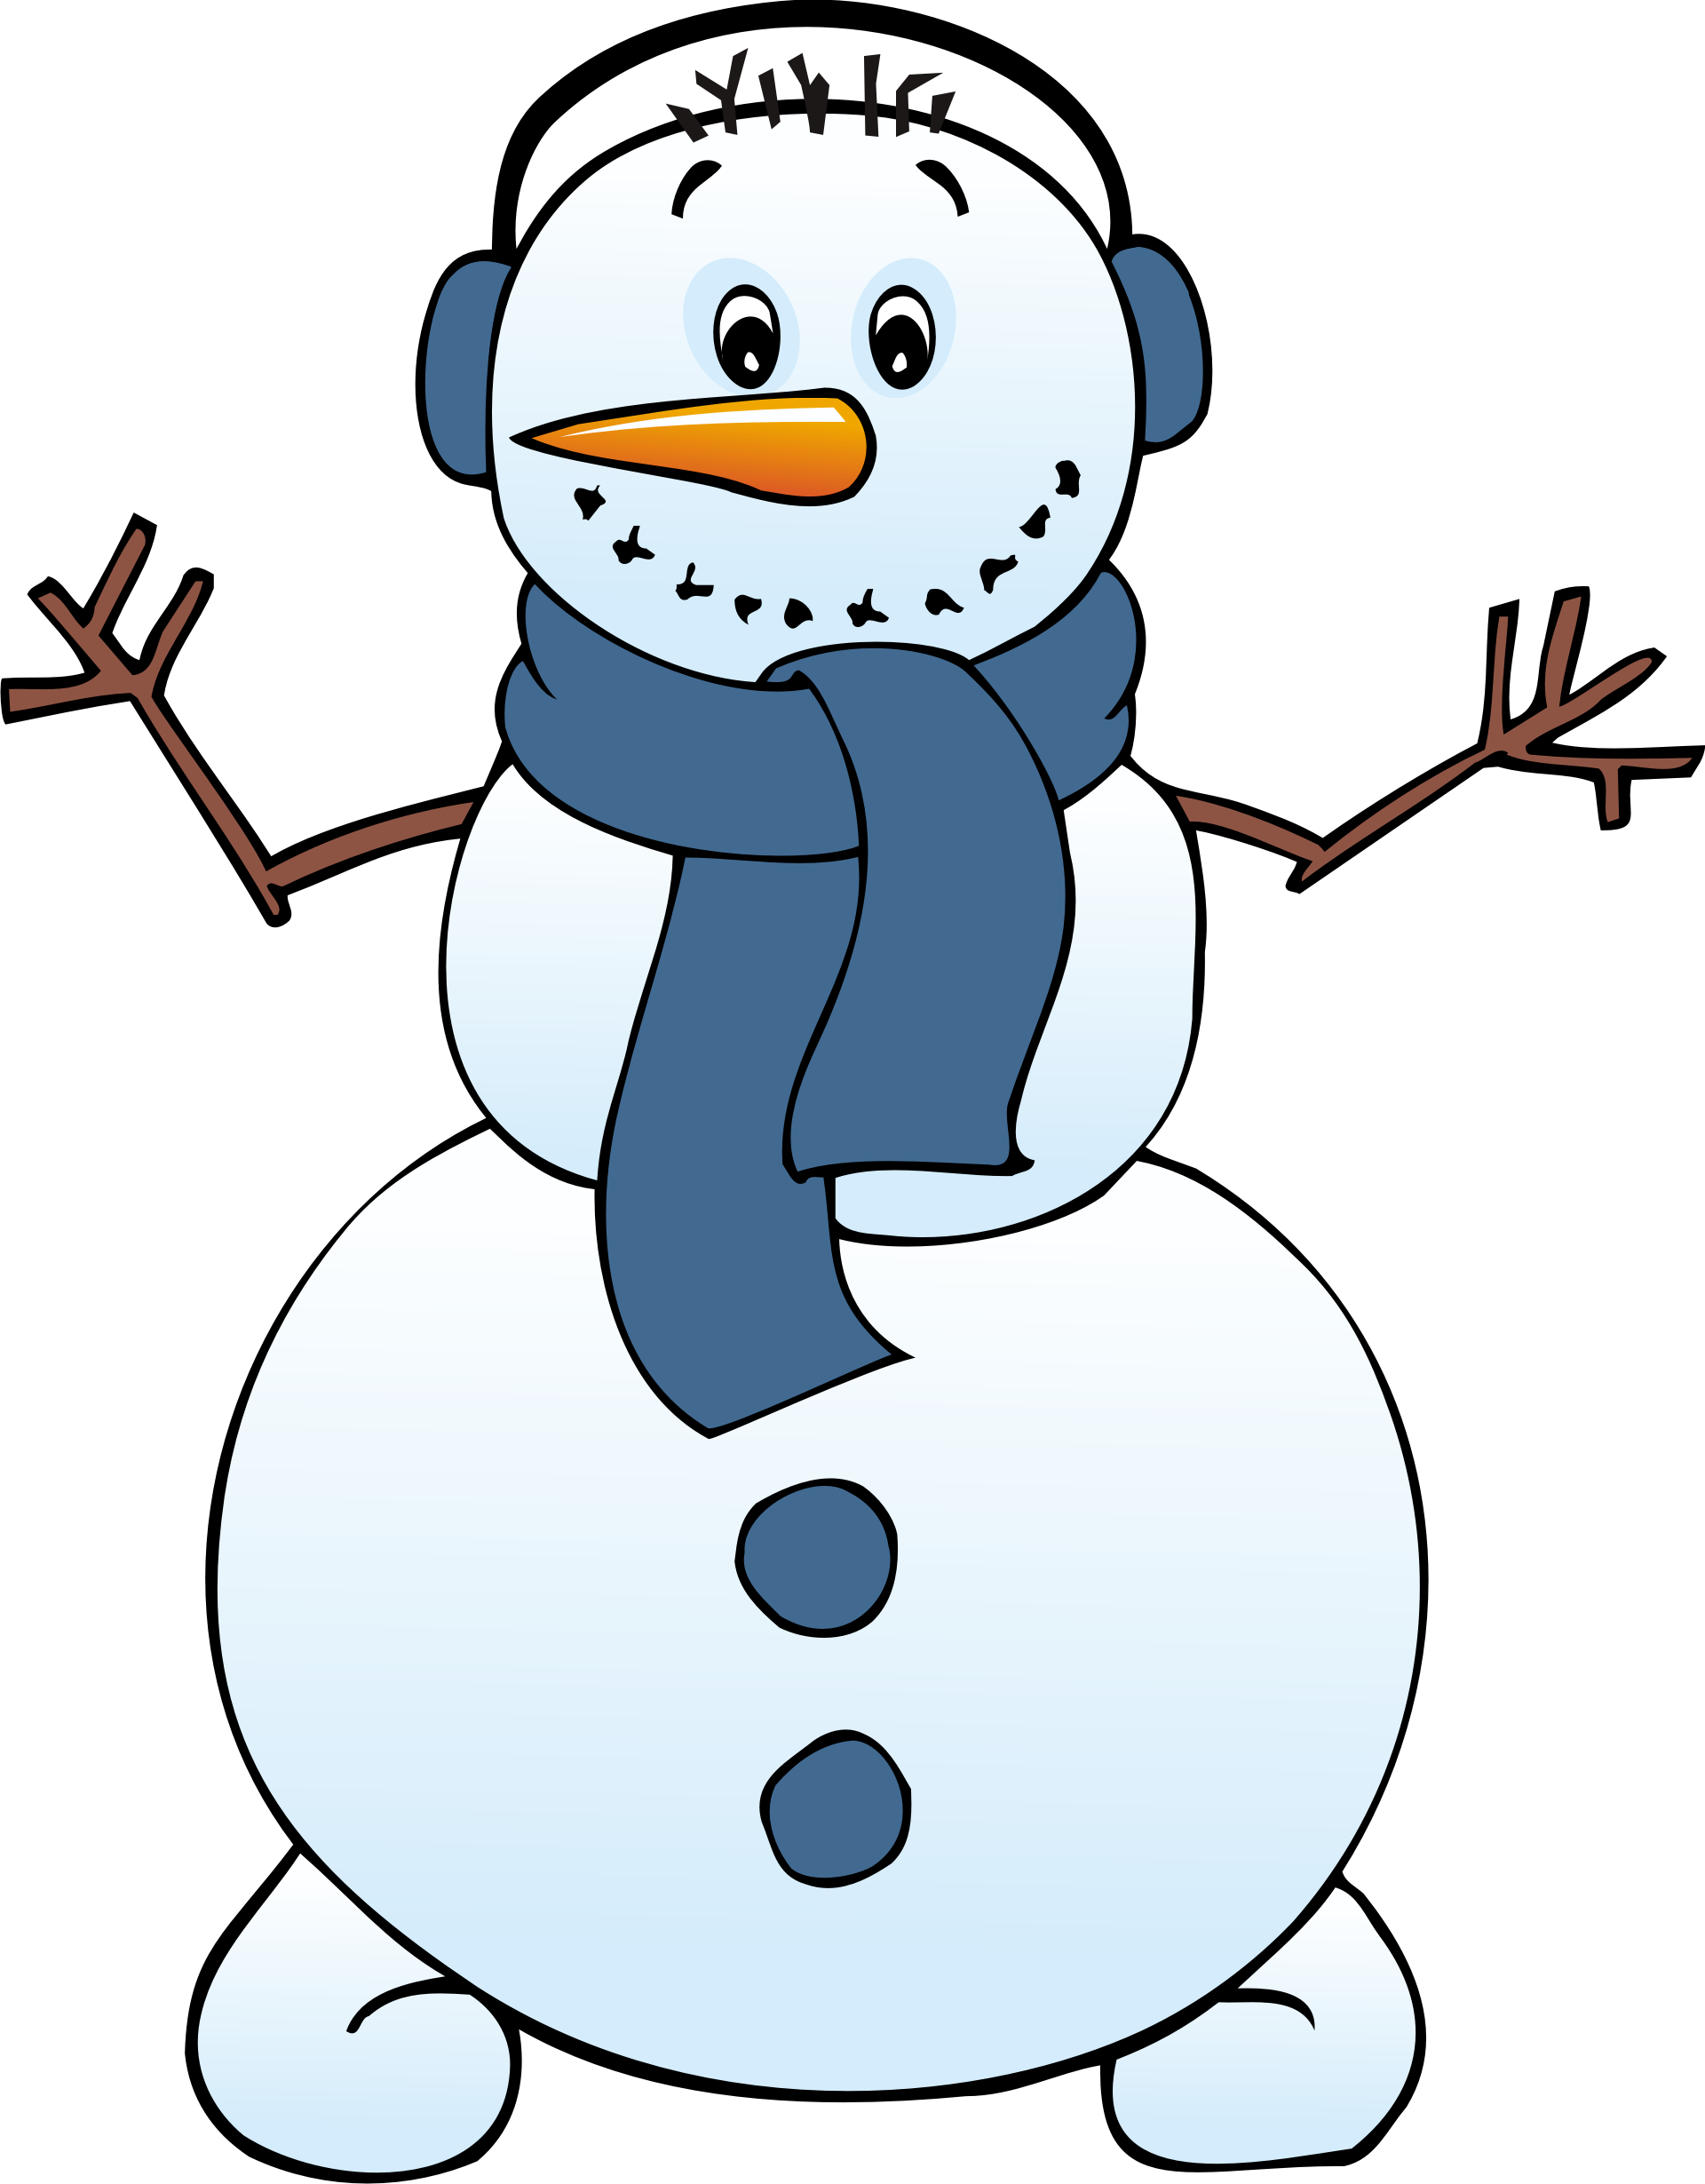 Gallery clipart winter fun Image Free Snowman Event Free